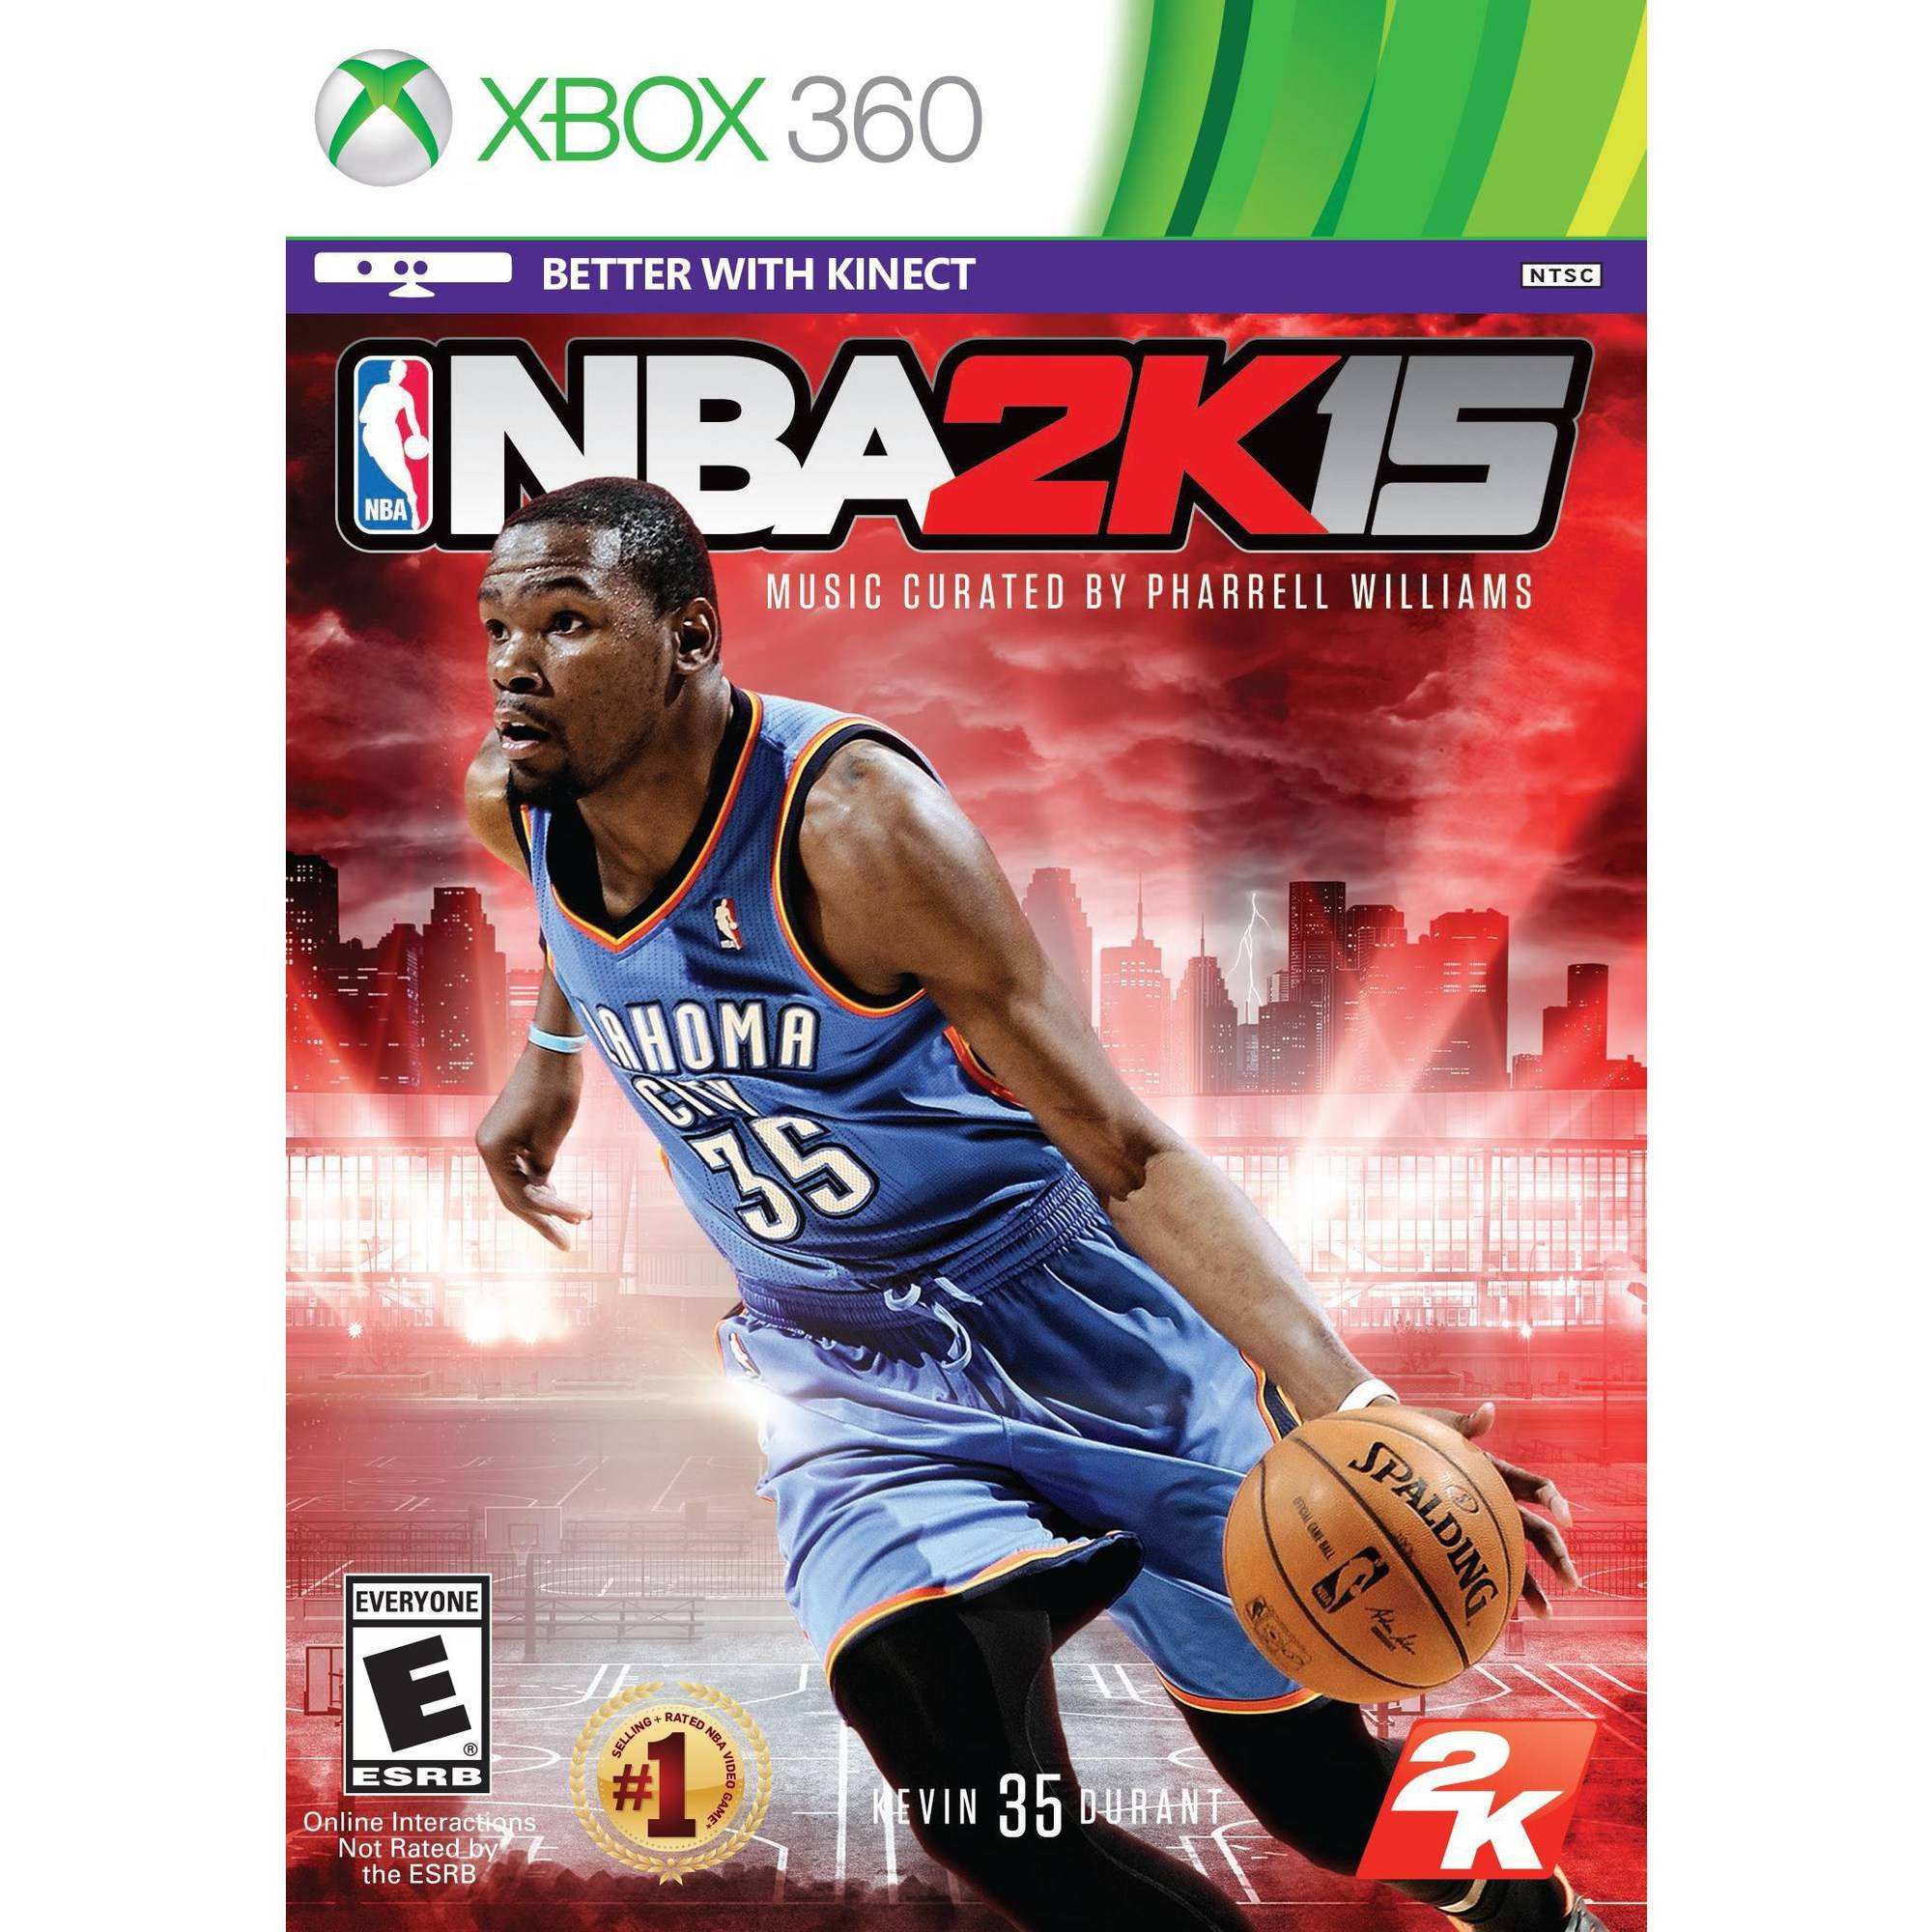 NBA 2K15 (Xbox 360) - Pre-Owned